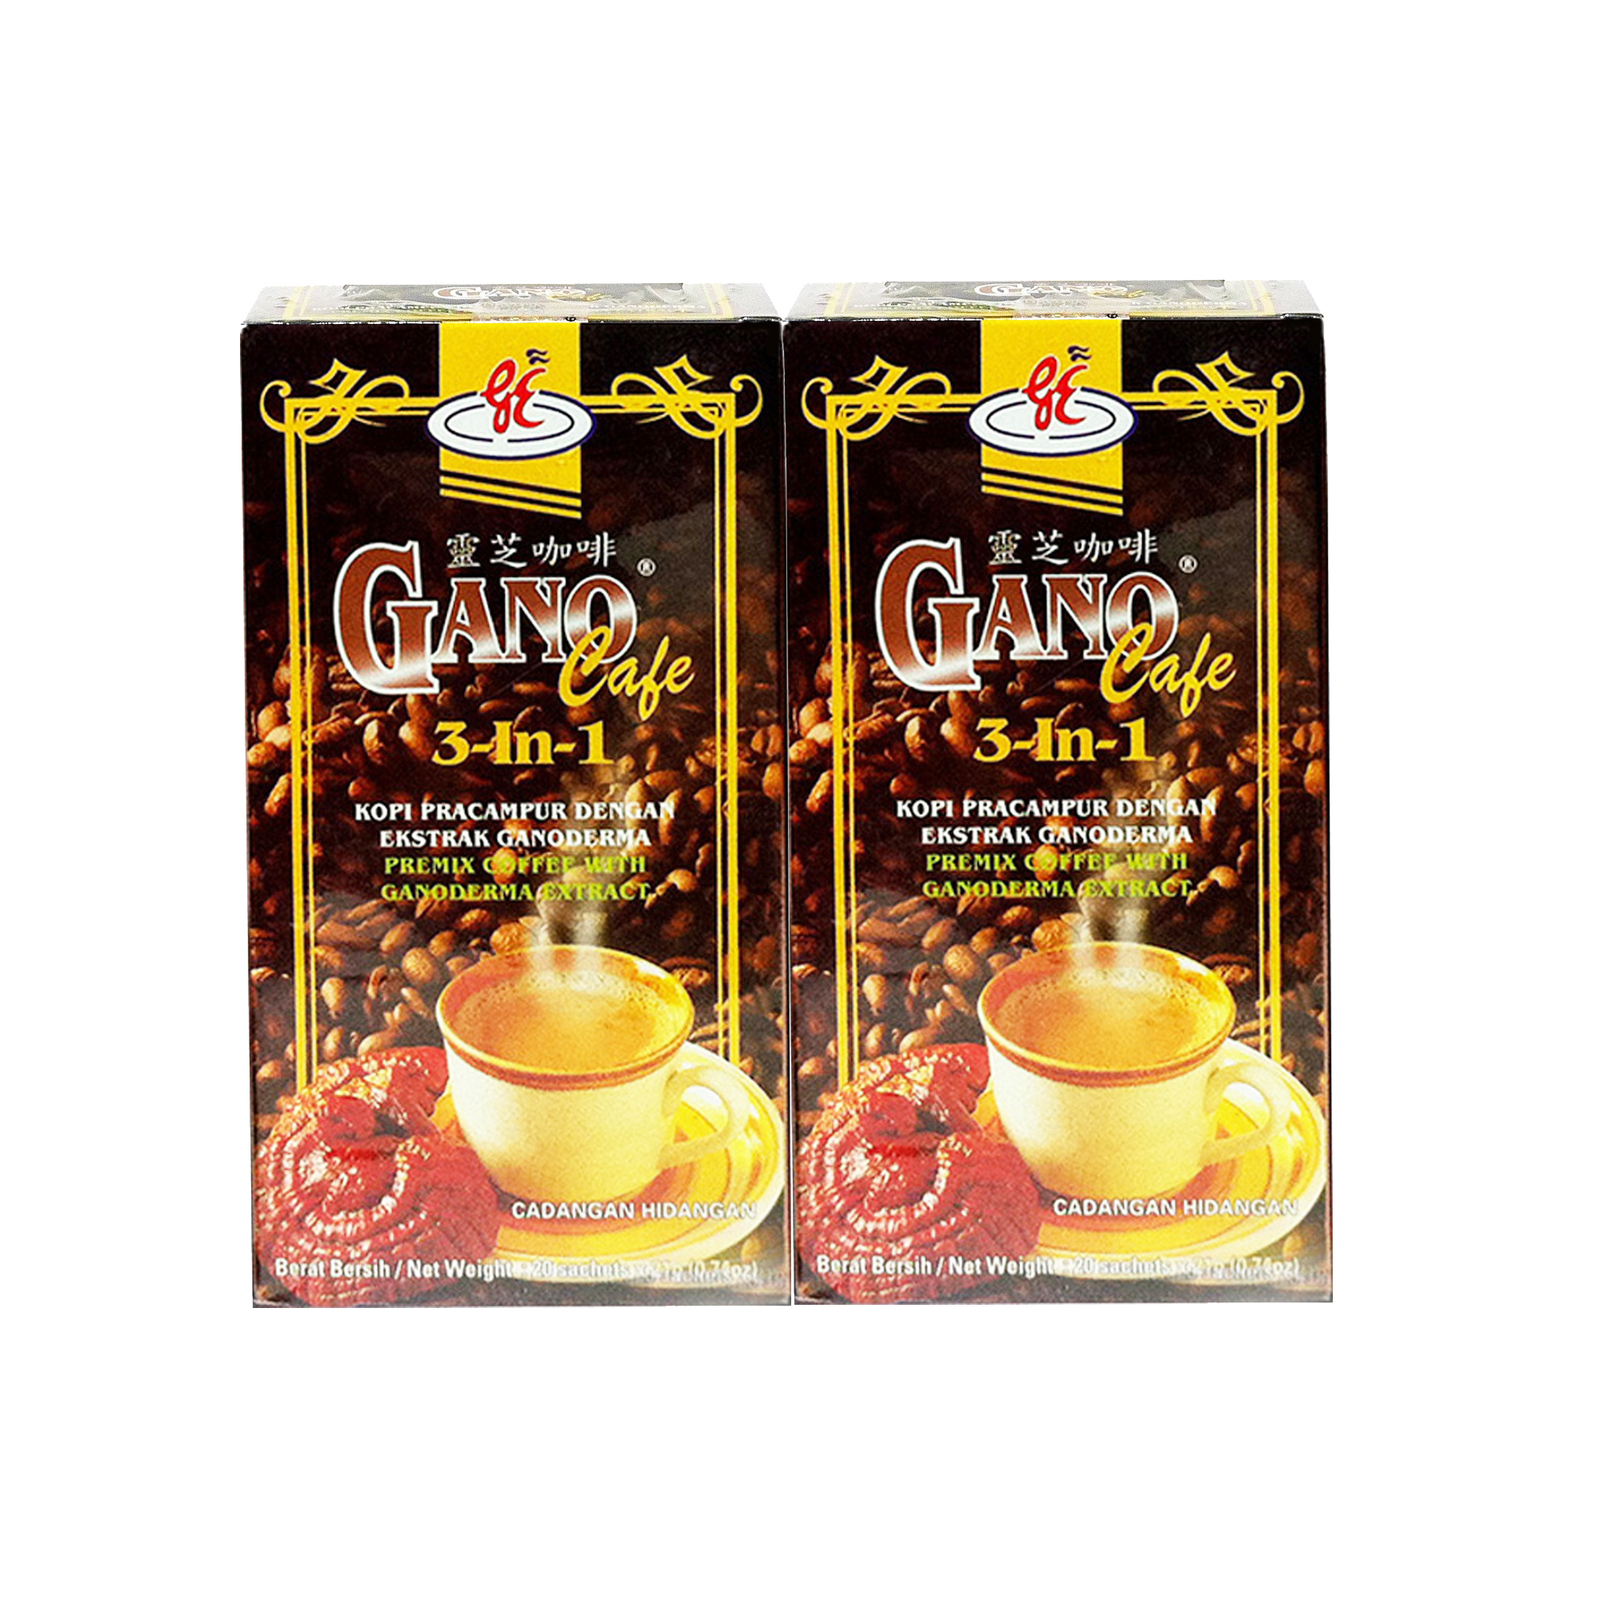 Gano excel 2 box gano cafe 3 in 1 instant and 48 similar items gano excel 2 box gano cafe 3 in 1 instant coffee 100 certified ganoderma reheart Choice Image